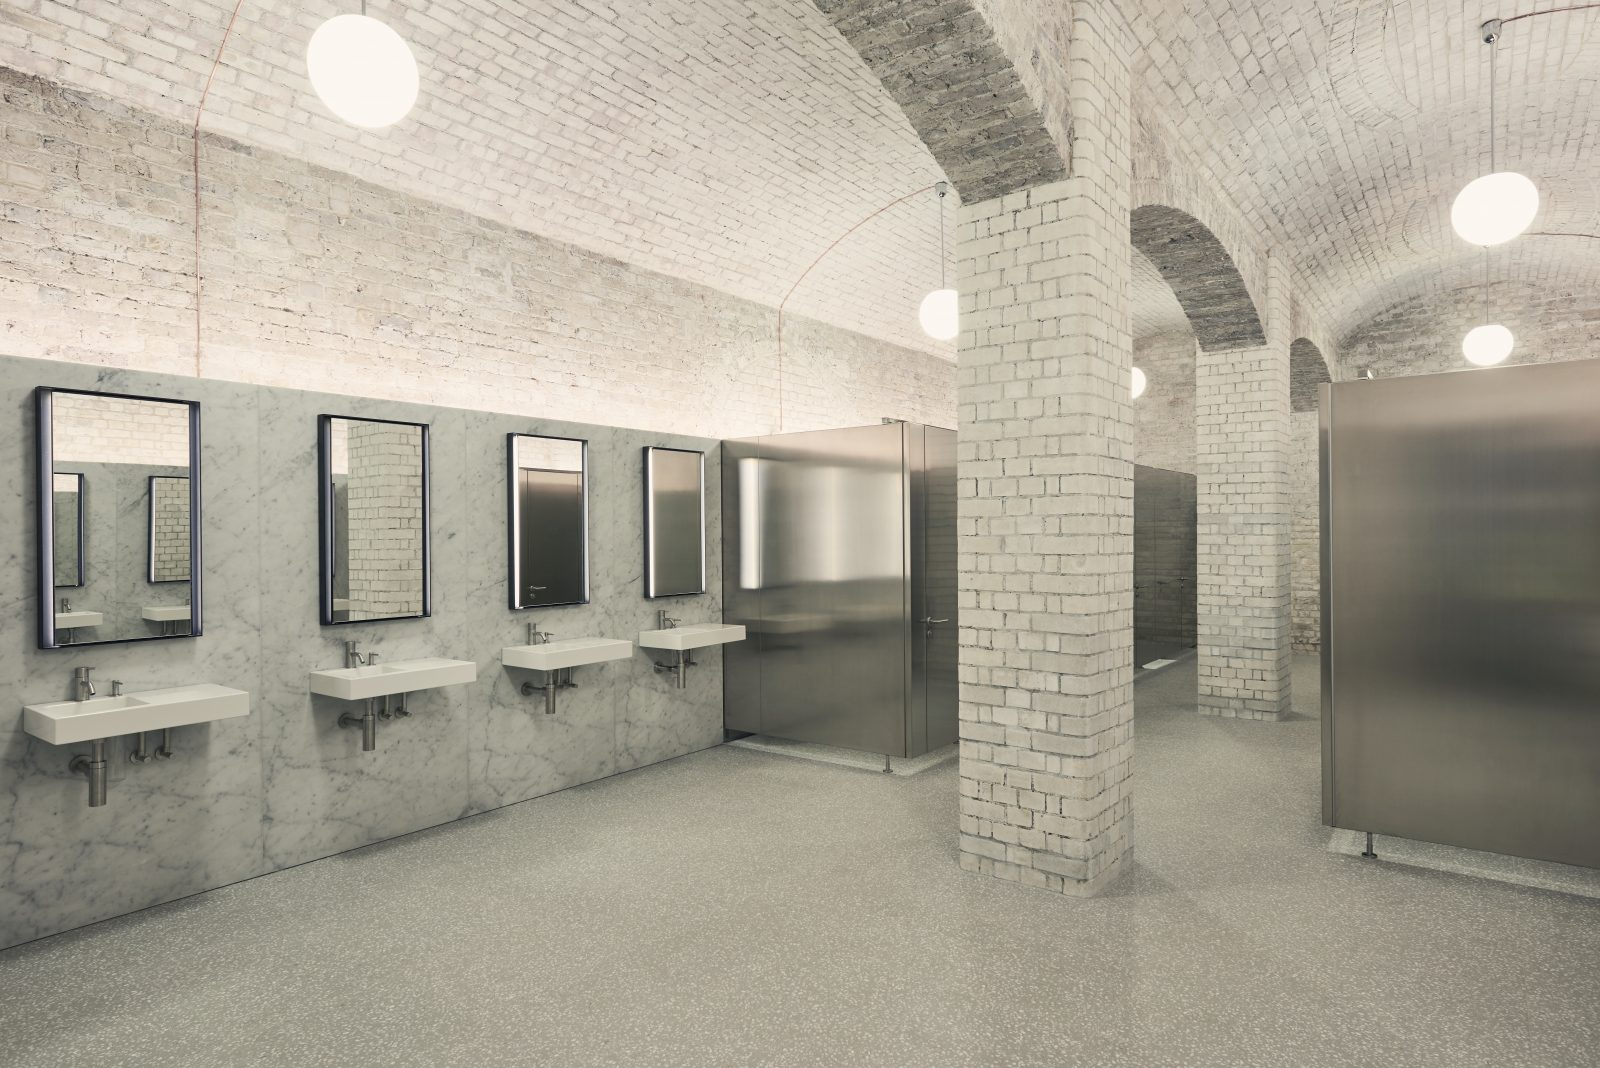 The toilet finishes comprise carrara marble walls and terazzo flooring